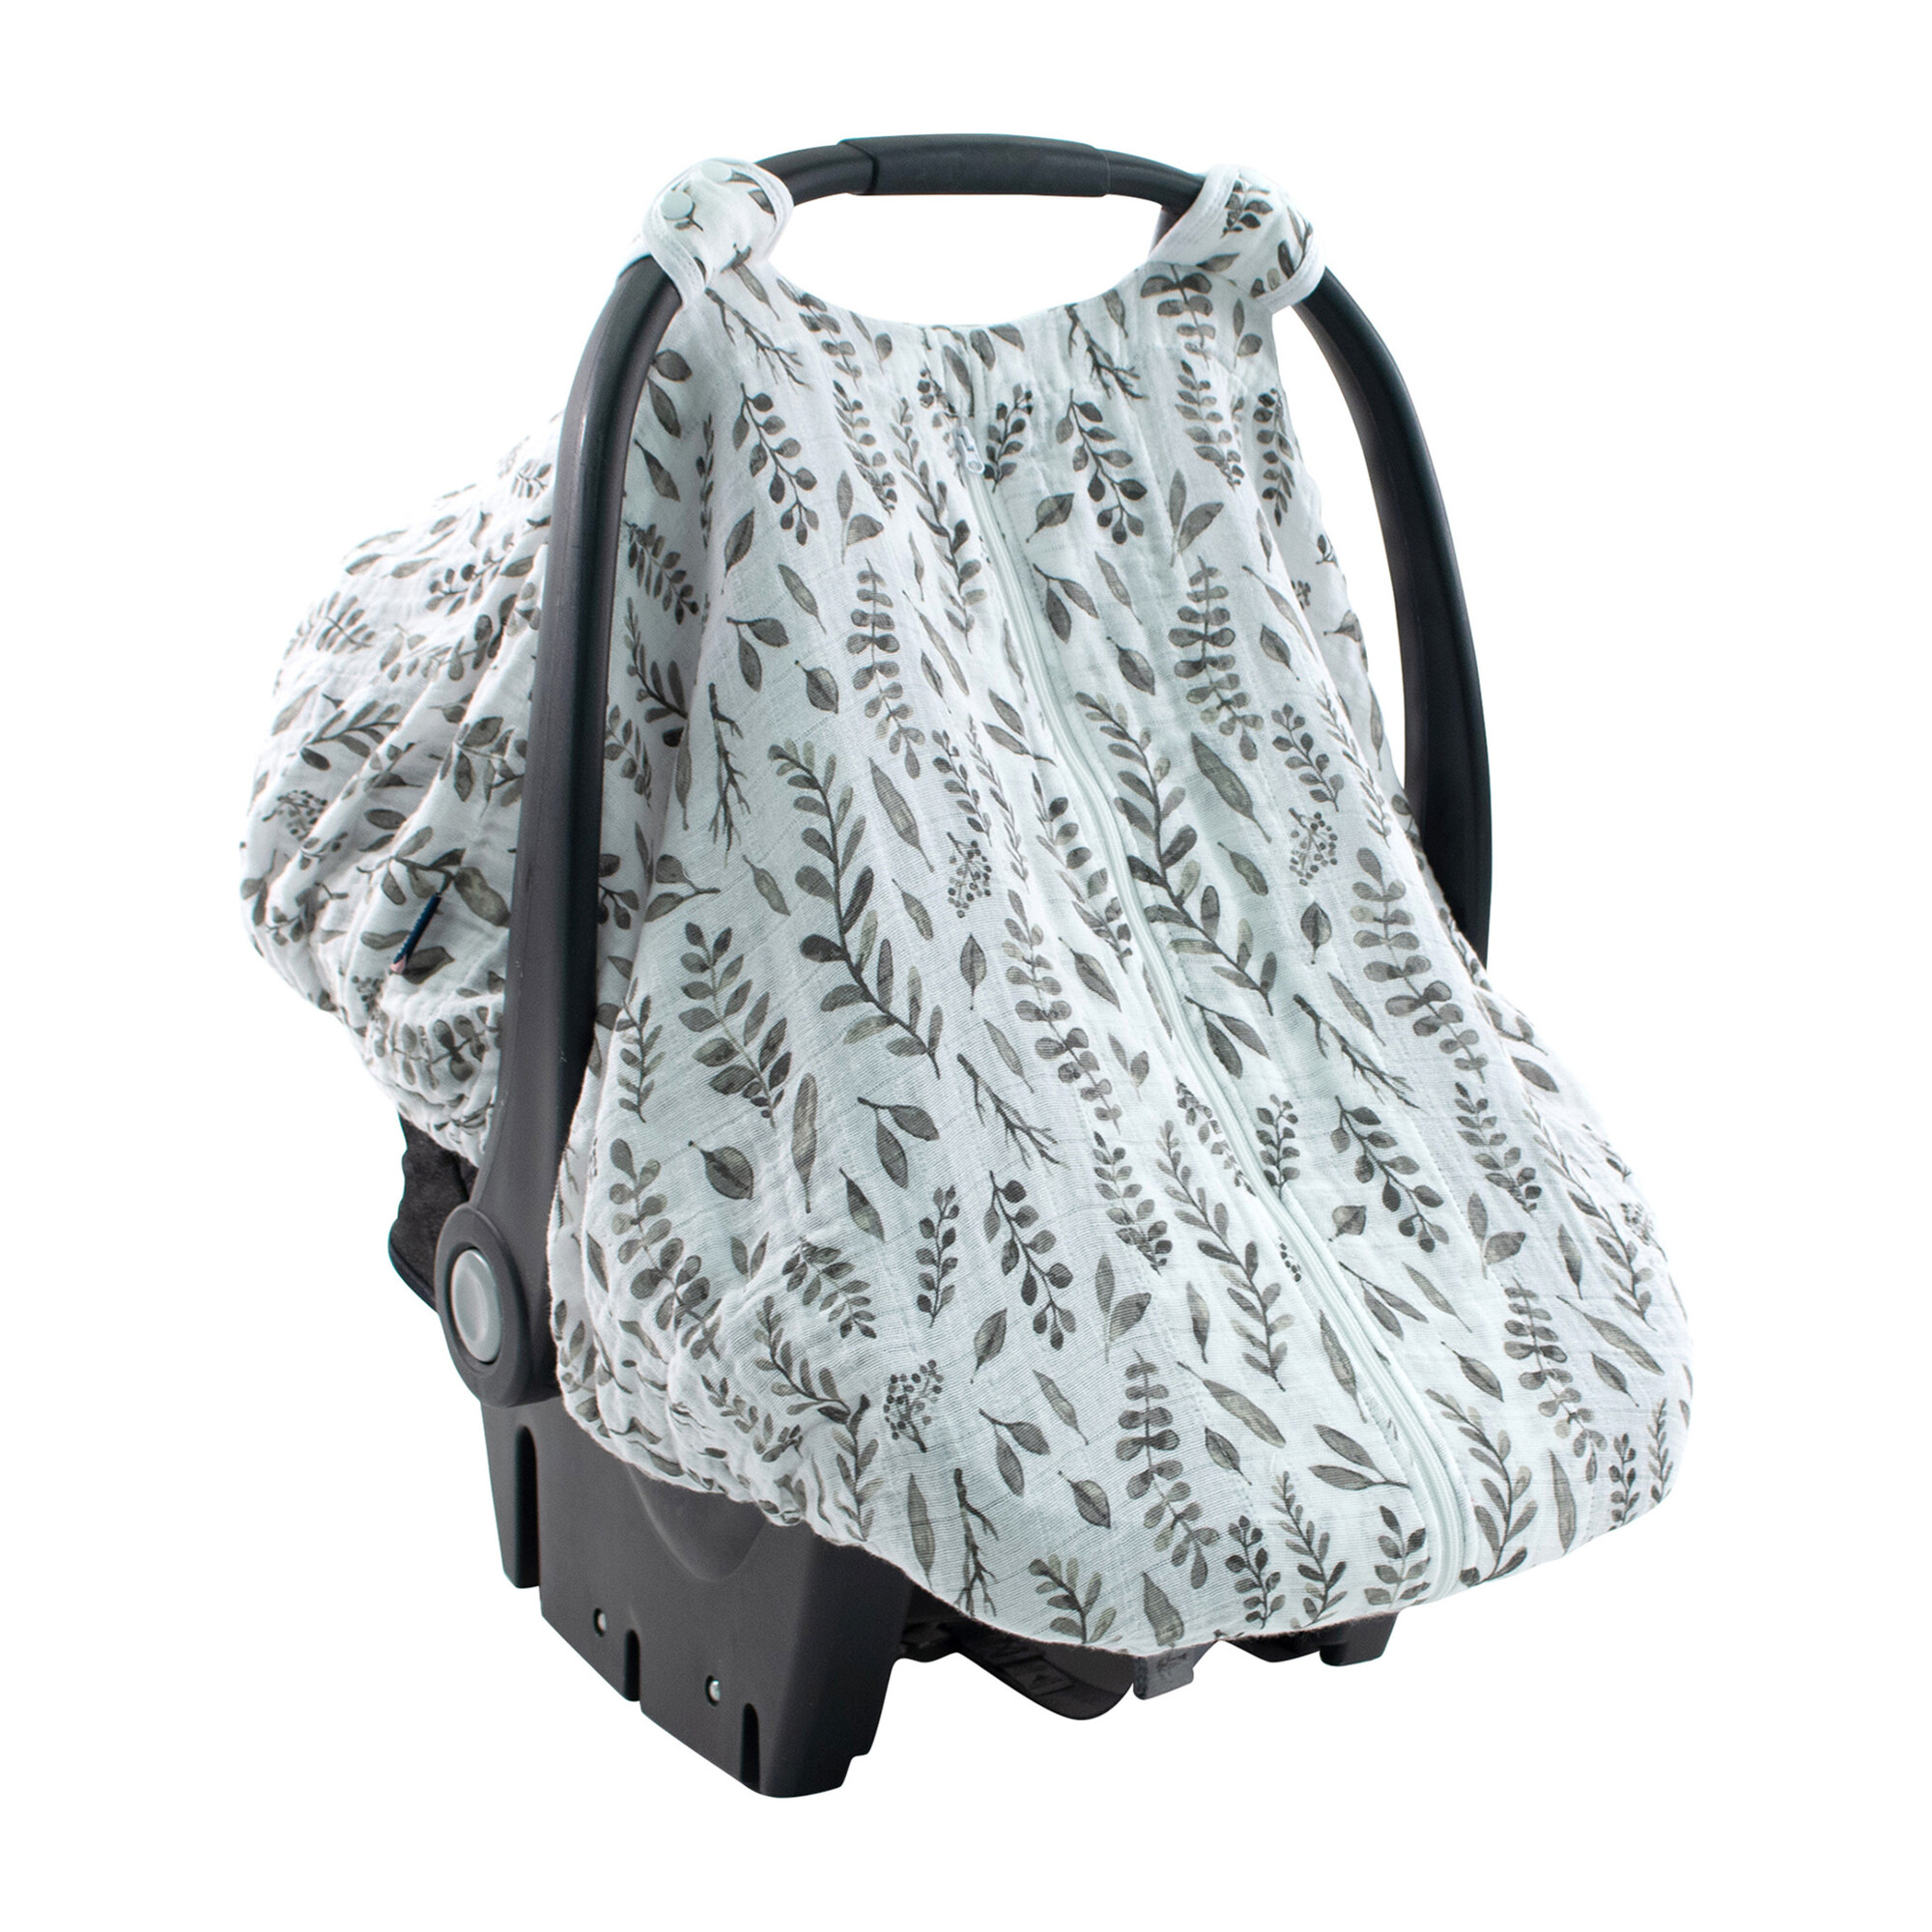 Car Seat Cover, Leaves